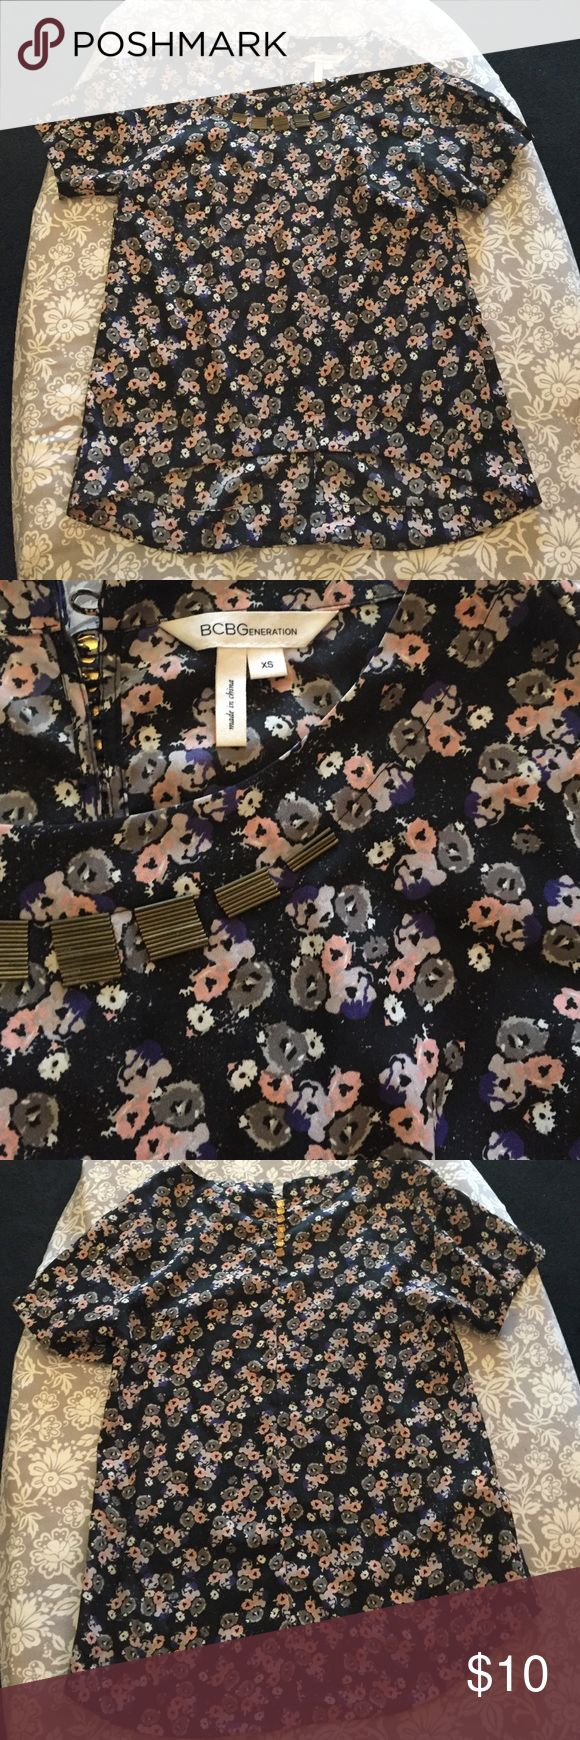 BCBGeneration floral top 🌸 GUC BCBGeneration floral slight high low top with embellished collar and button top back, missing one button on the back, not noticeable while wearing! 🌸 BCBGeneration Tops Blouses